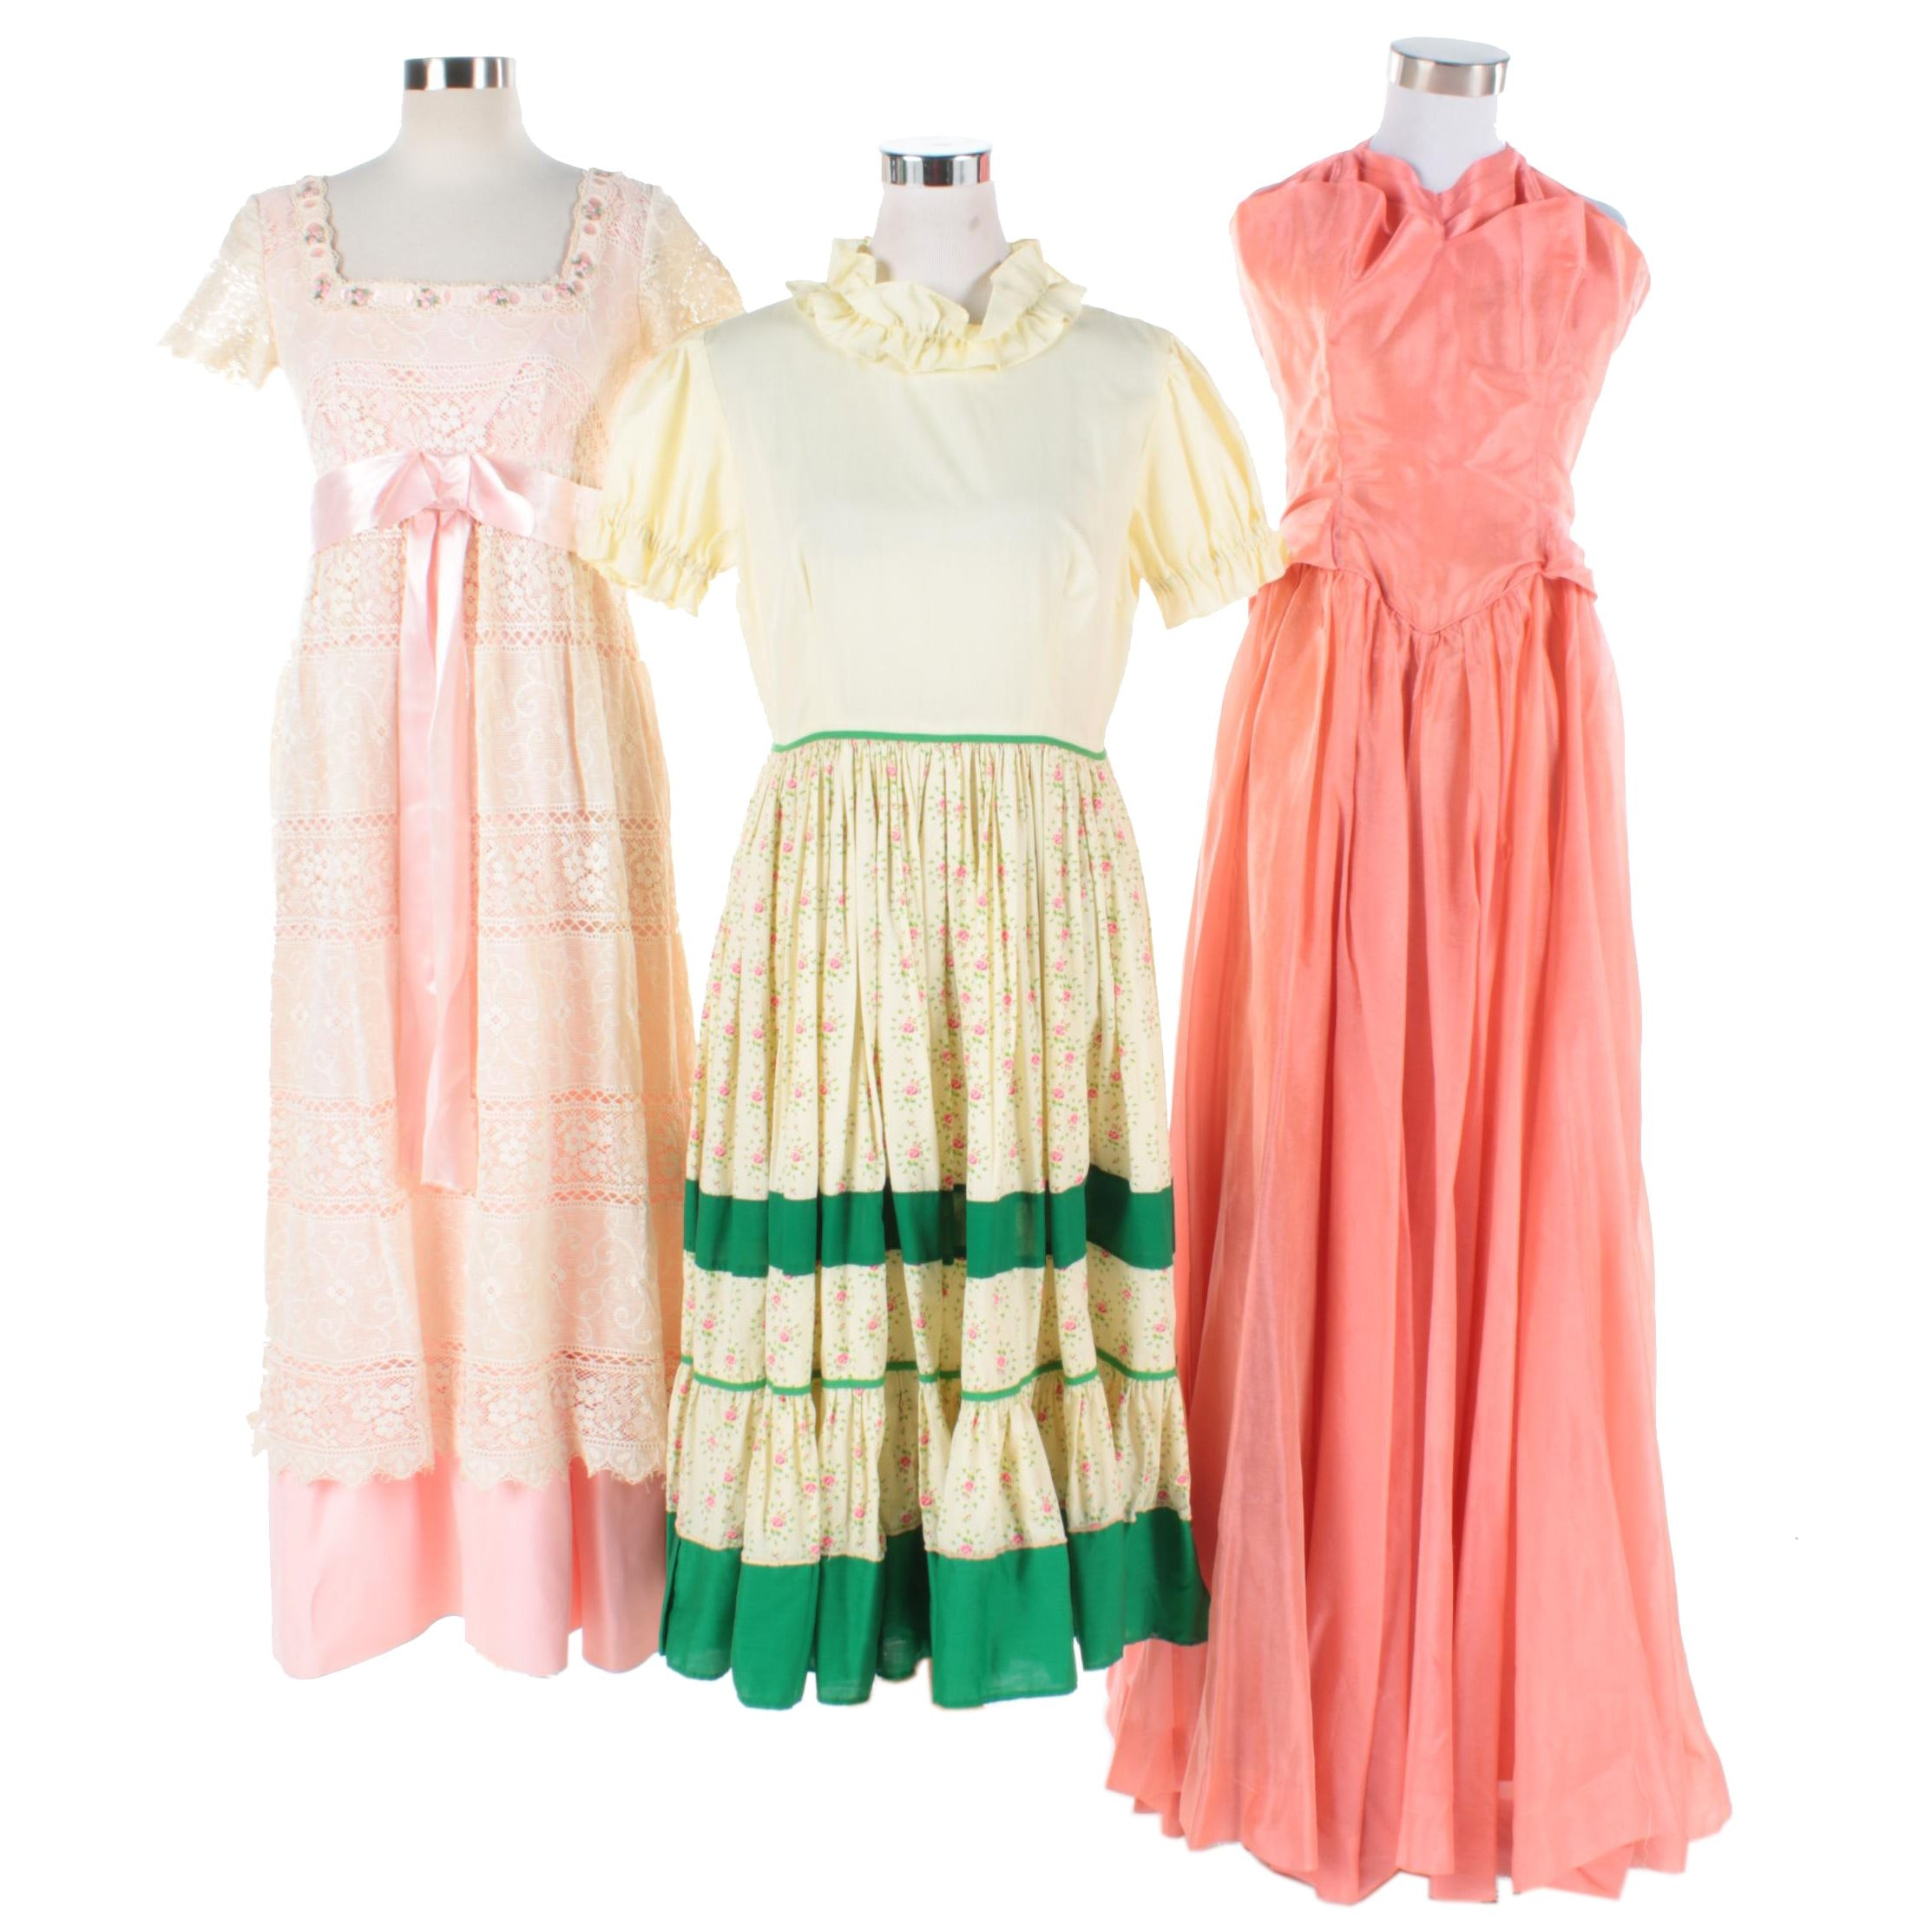 Vintage Formal and Day Dresses